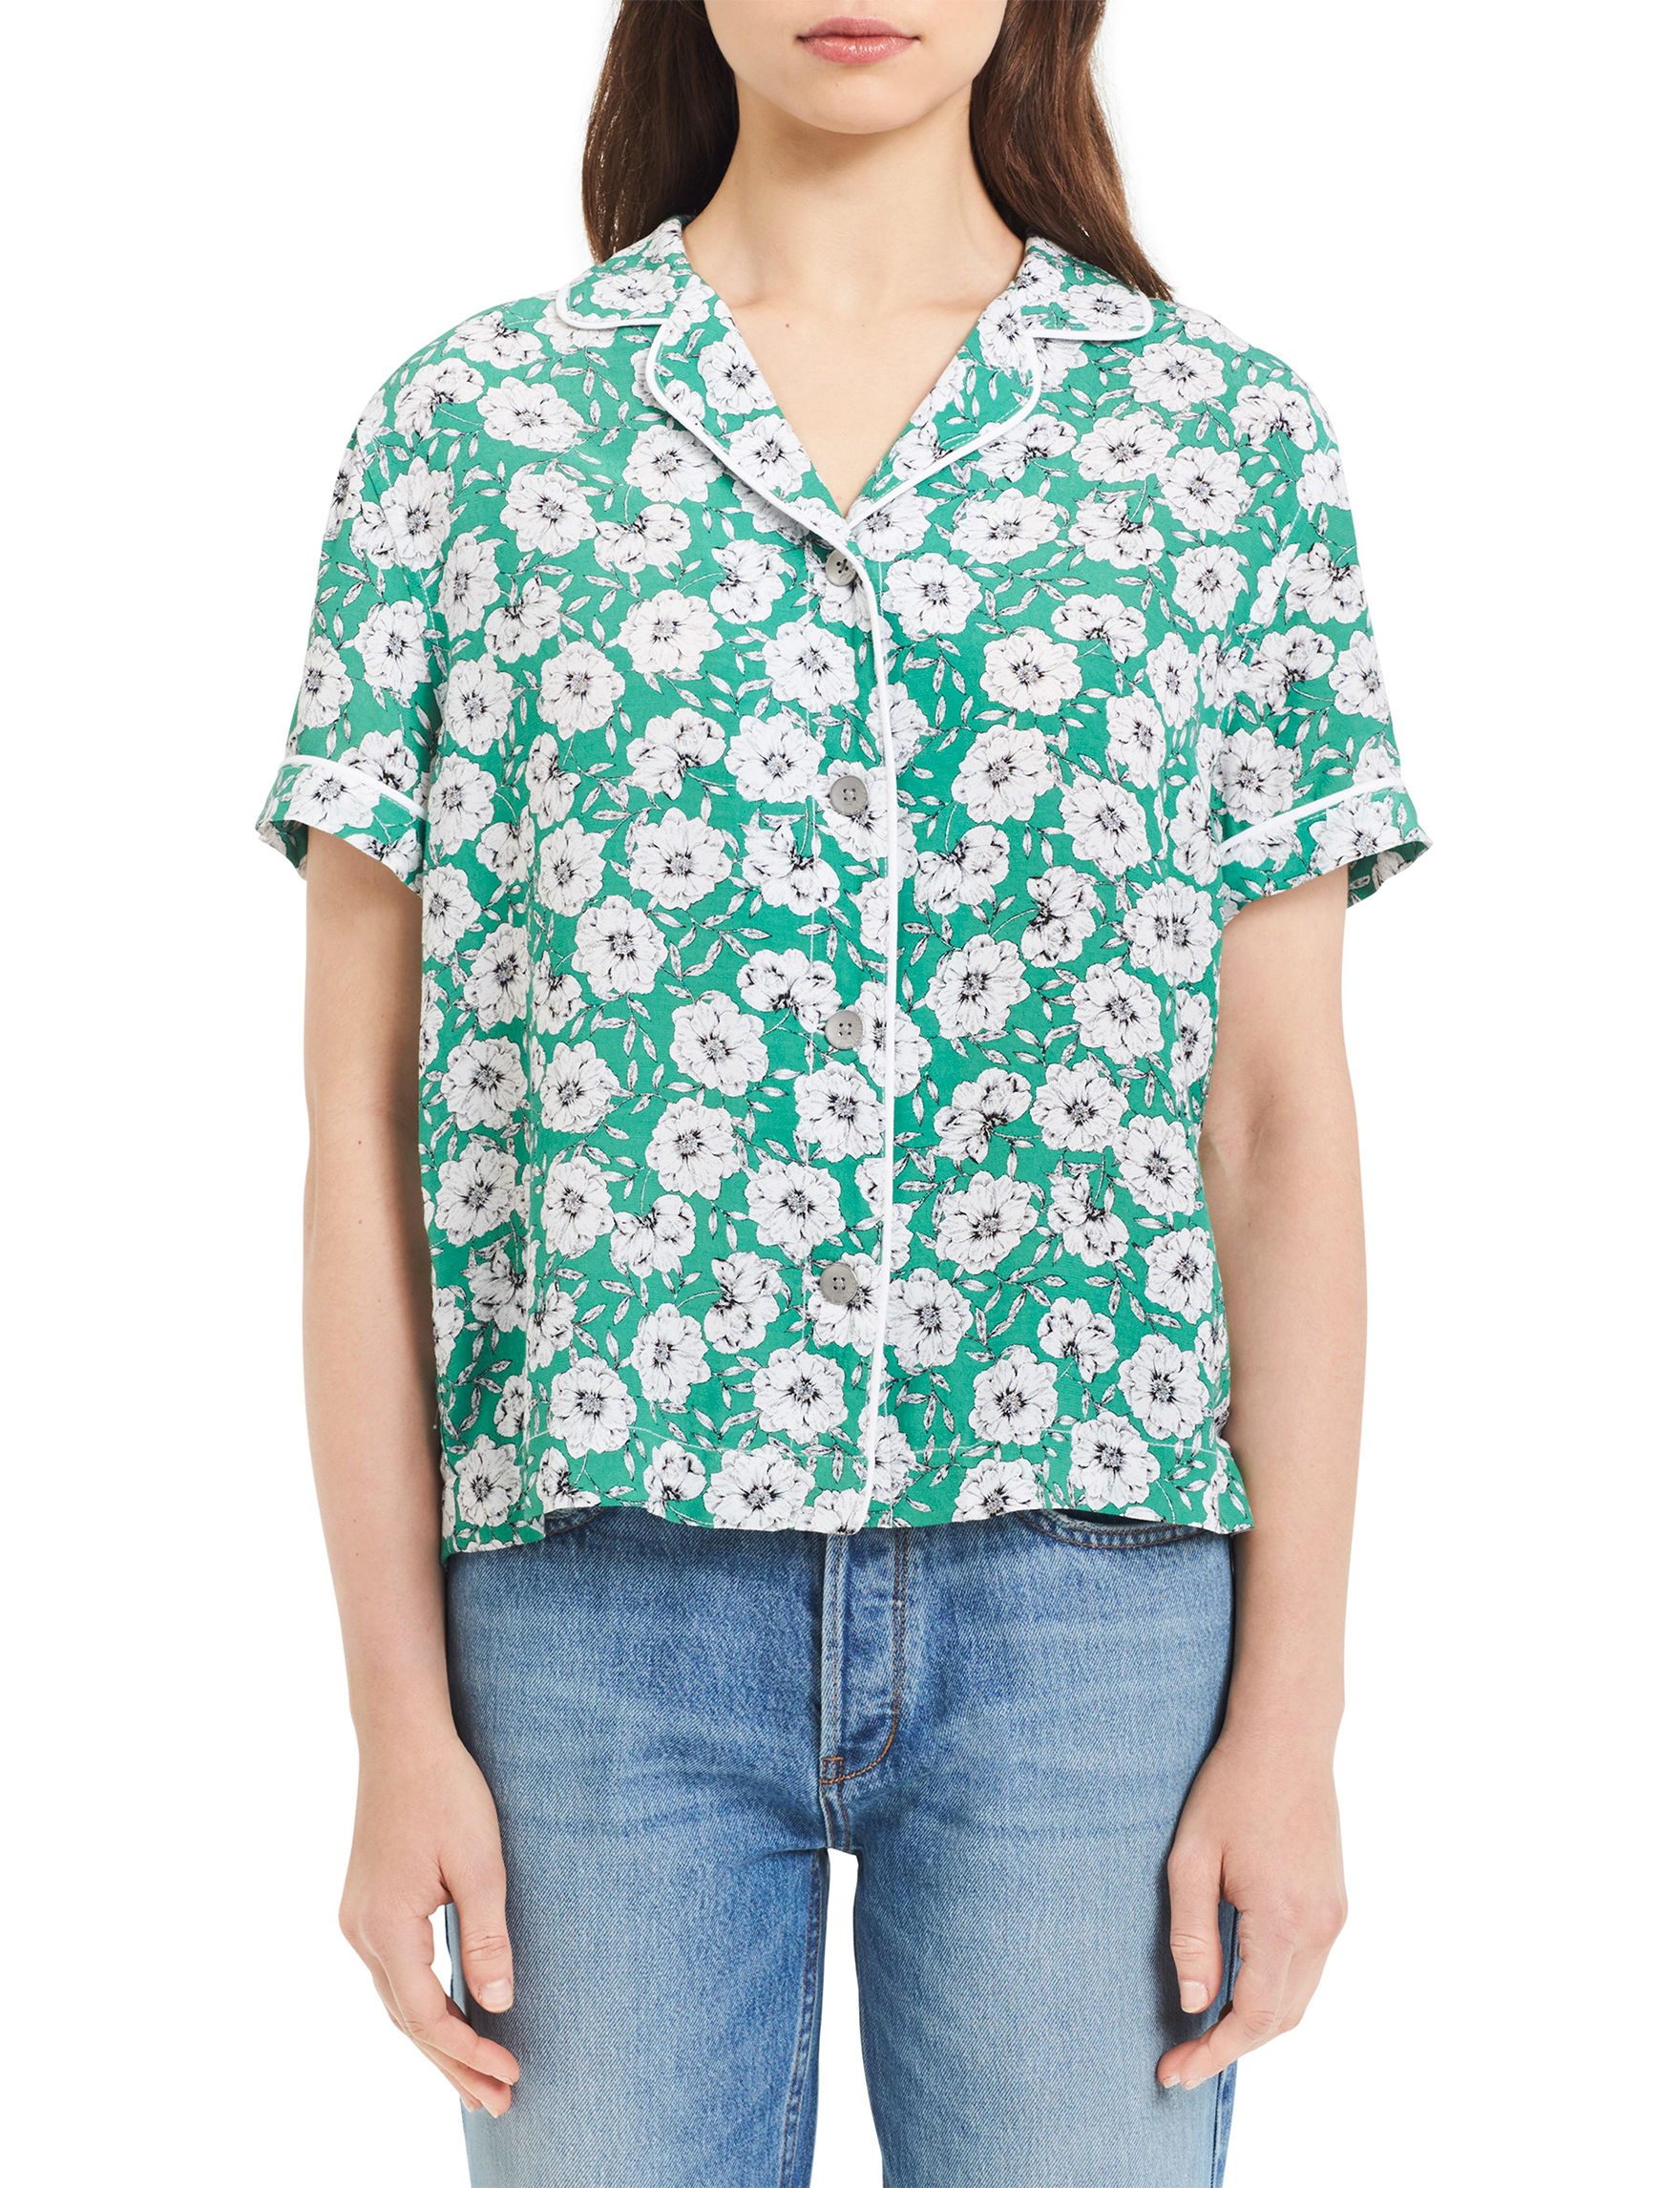 Calvin Klein Jeans Green Shirts & Blouses